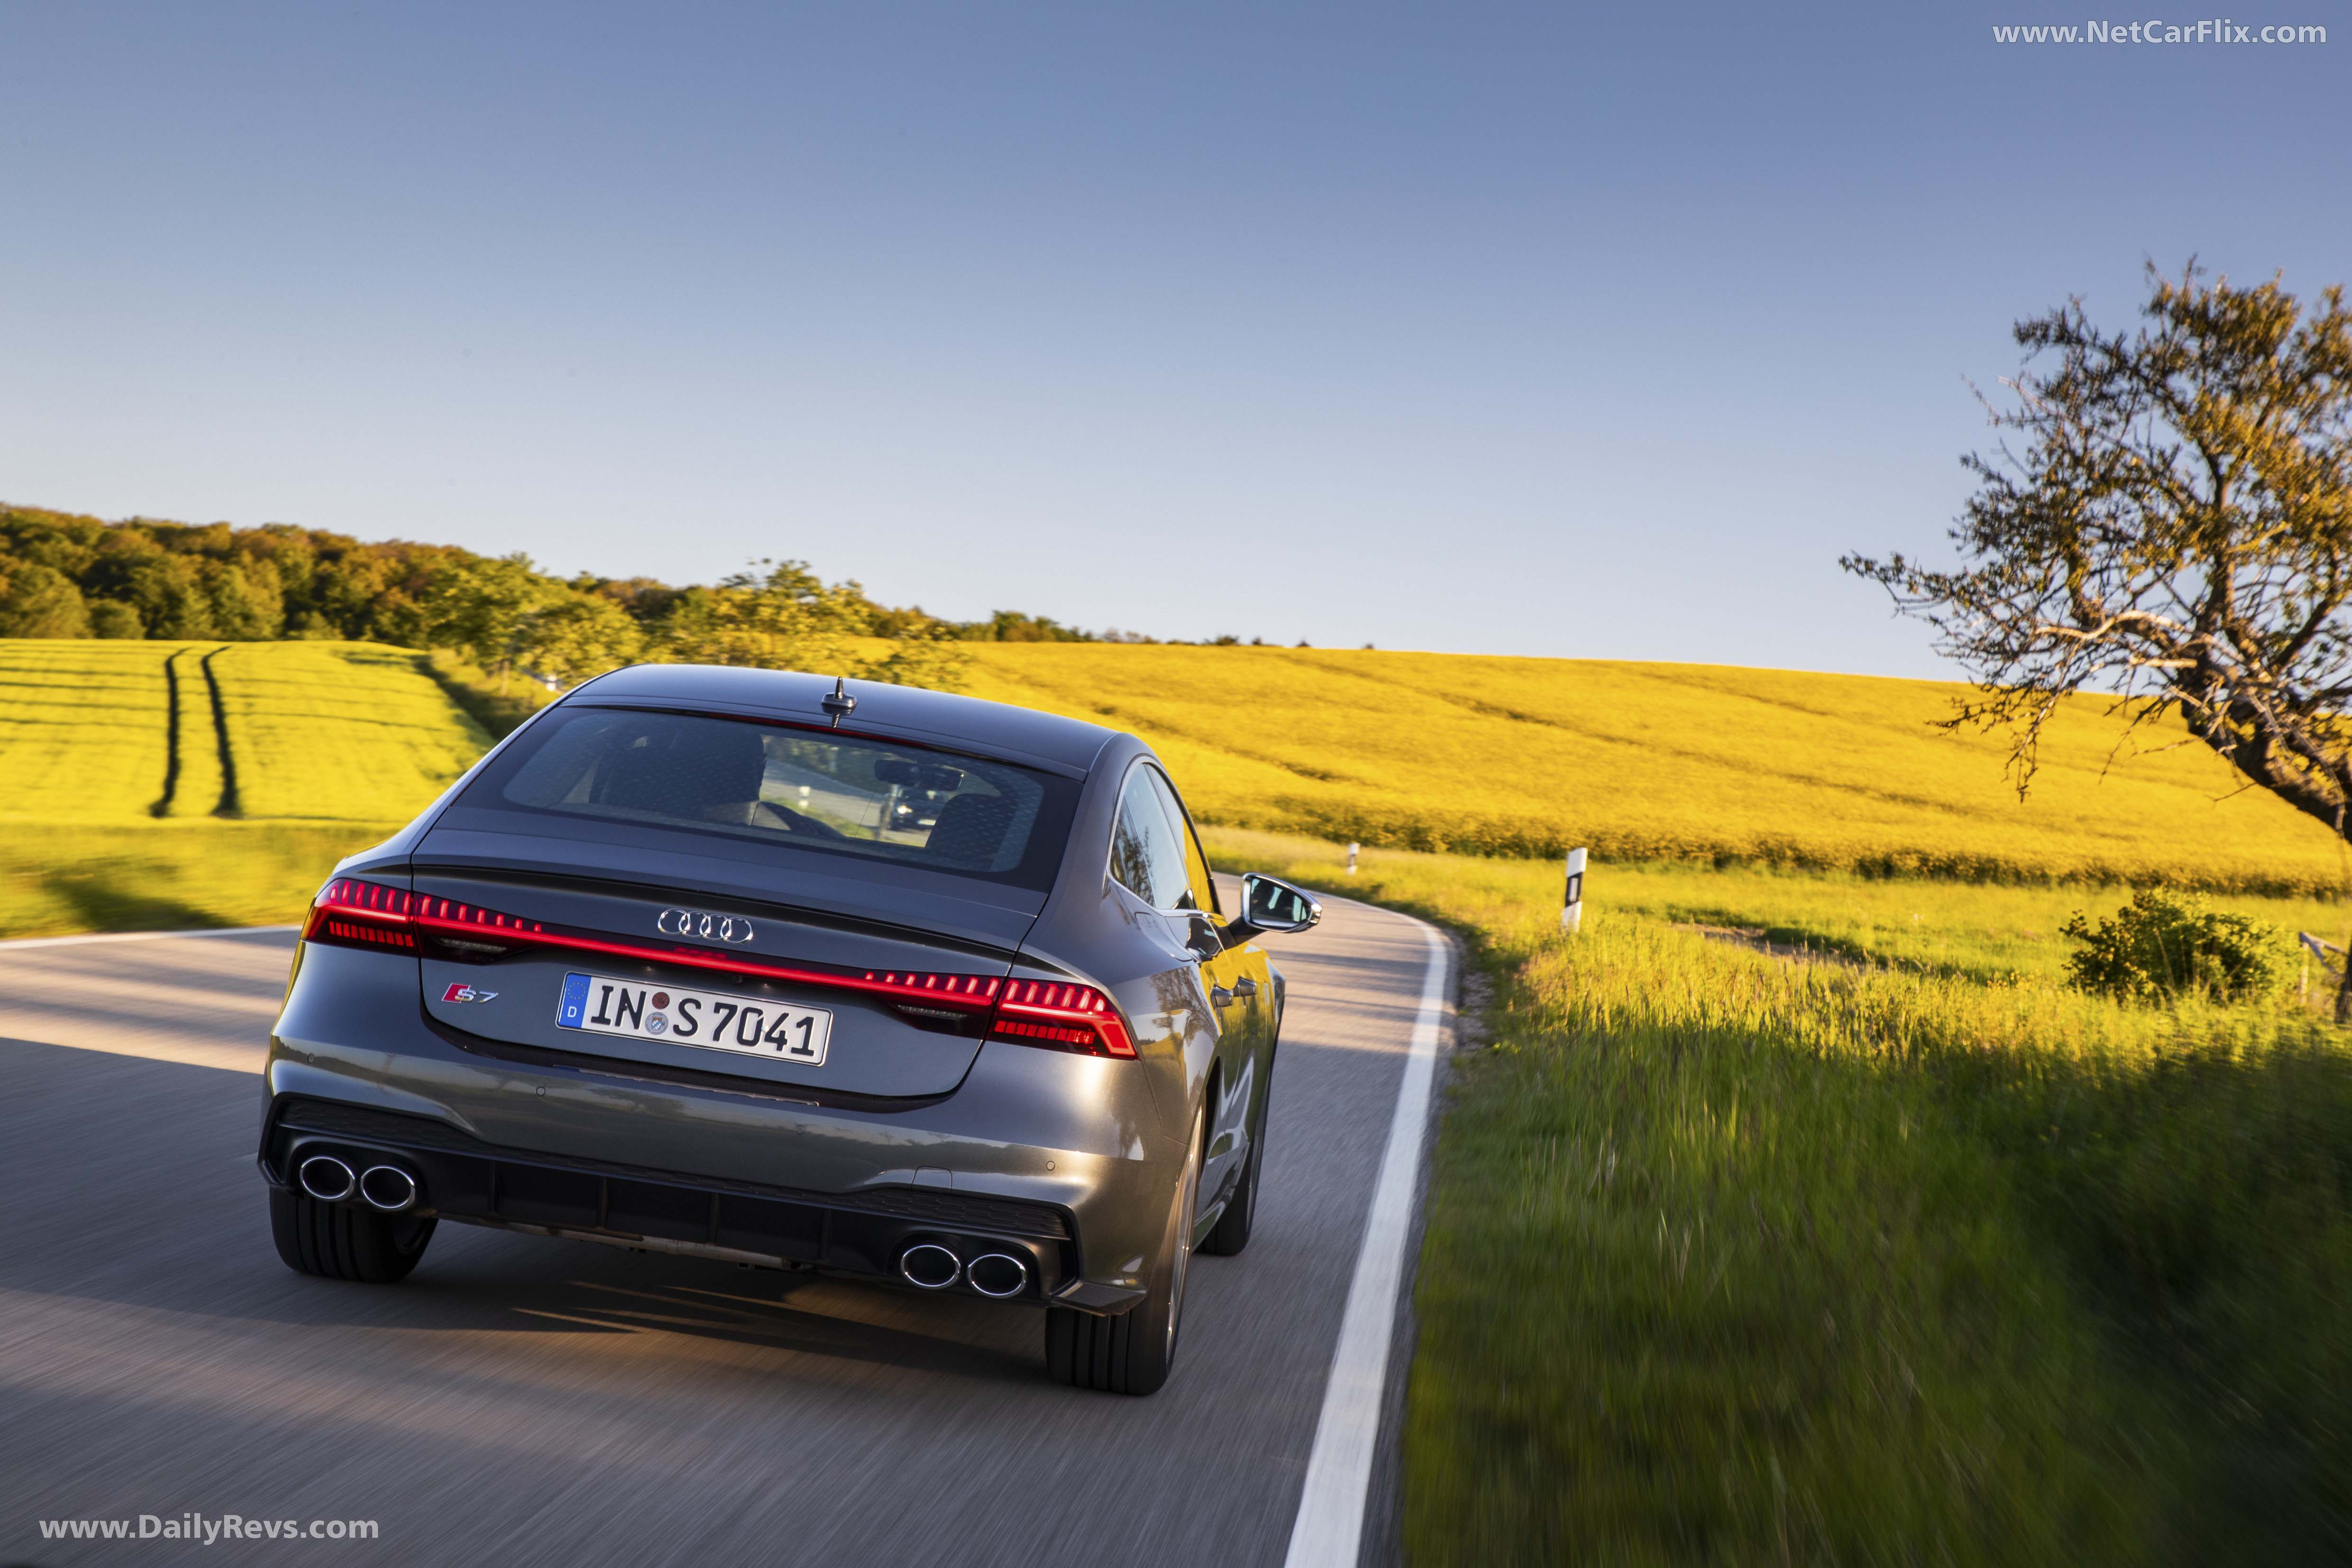 2020 Audi S7 Sportback TDI - Pictures, Images & Wallpapers ...